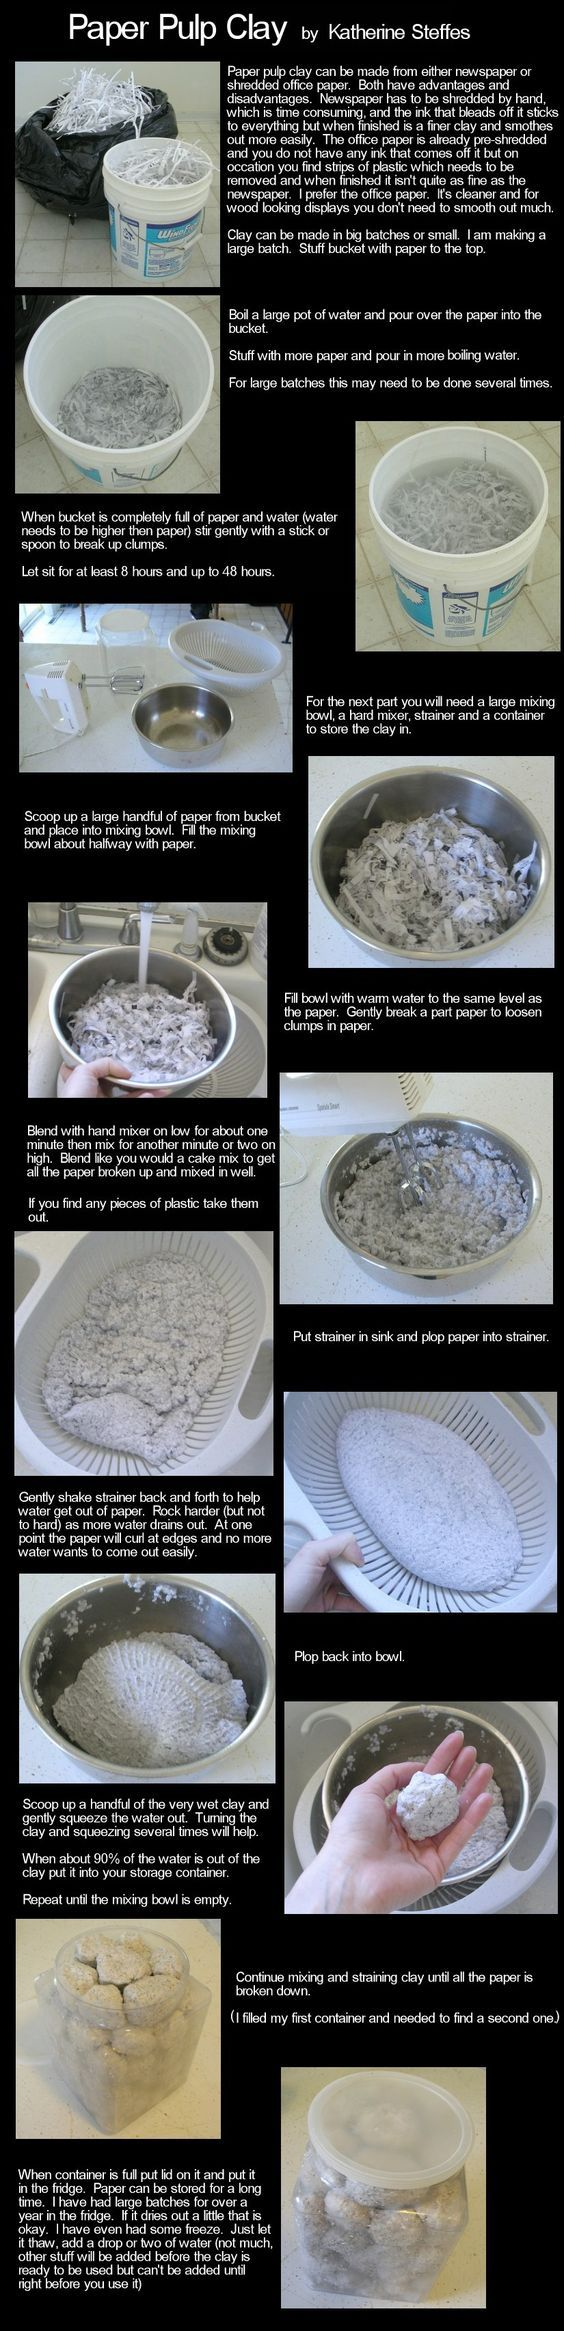 Paper Mache Recipe | proptology recipes ronnie burkett s papier mache recipes papier mache ...: